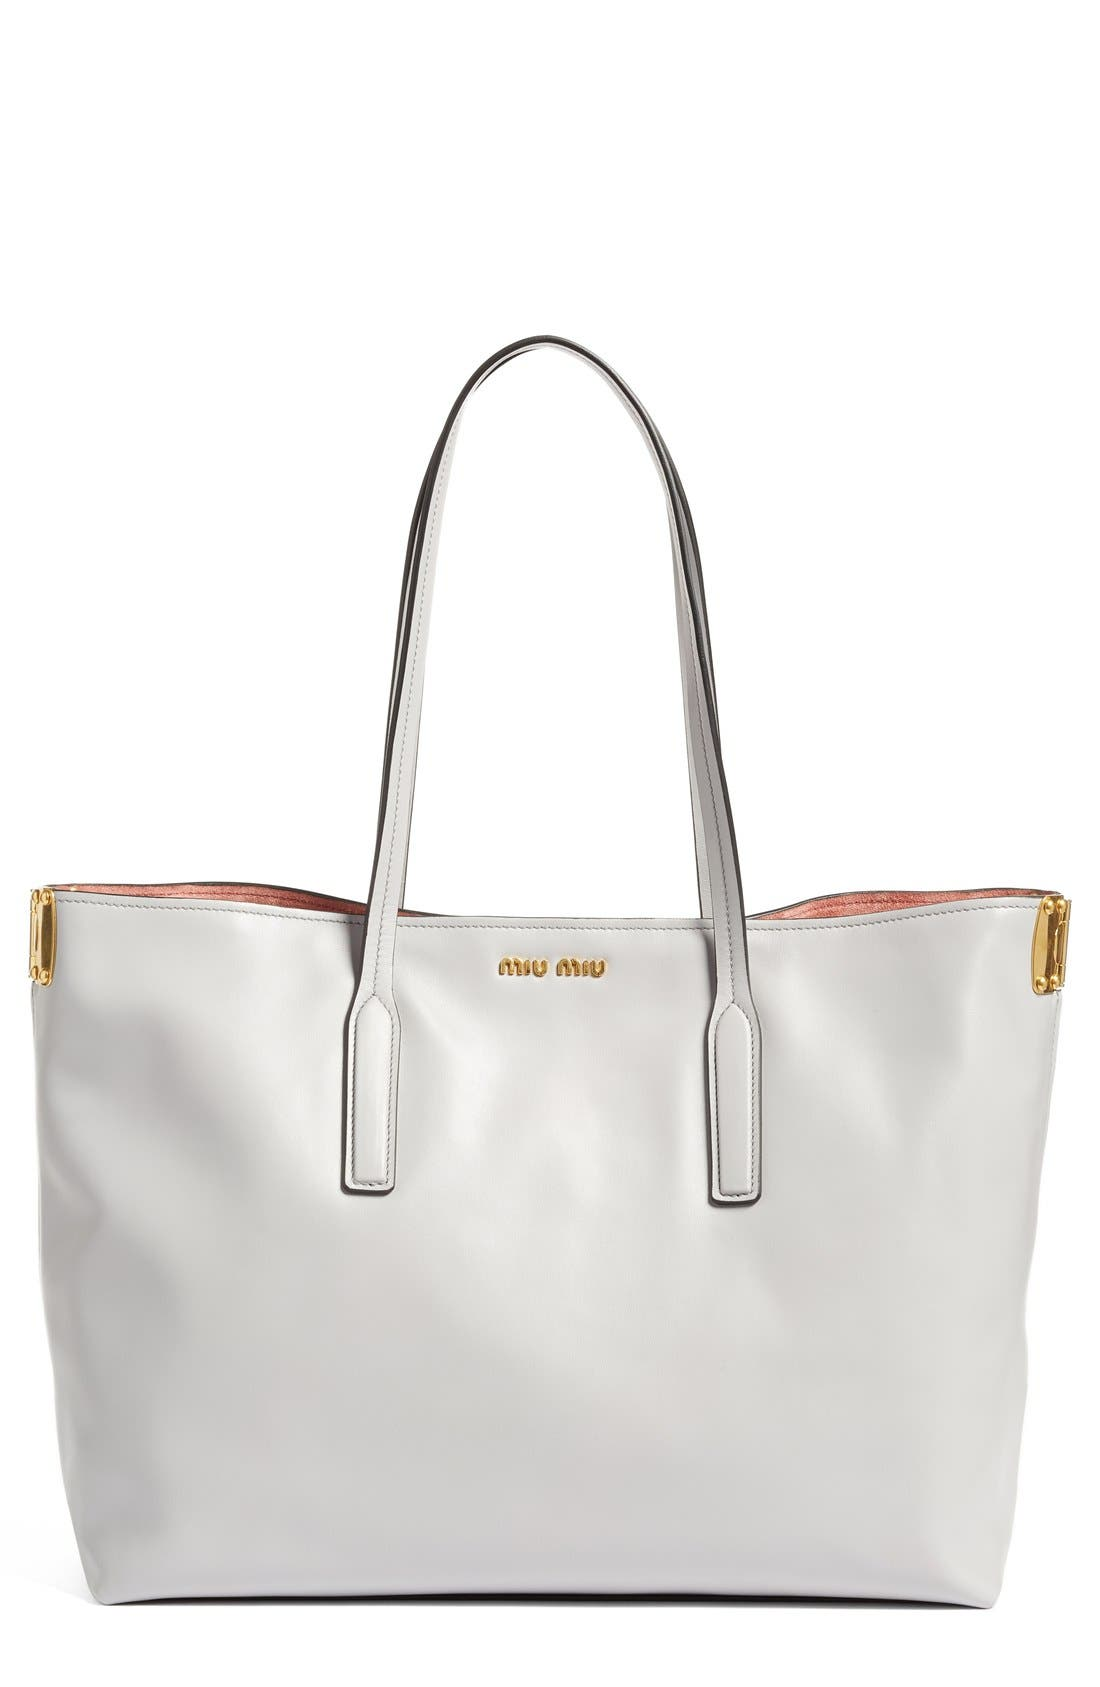 Miu Miu Large Calfskin Leather Shopper